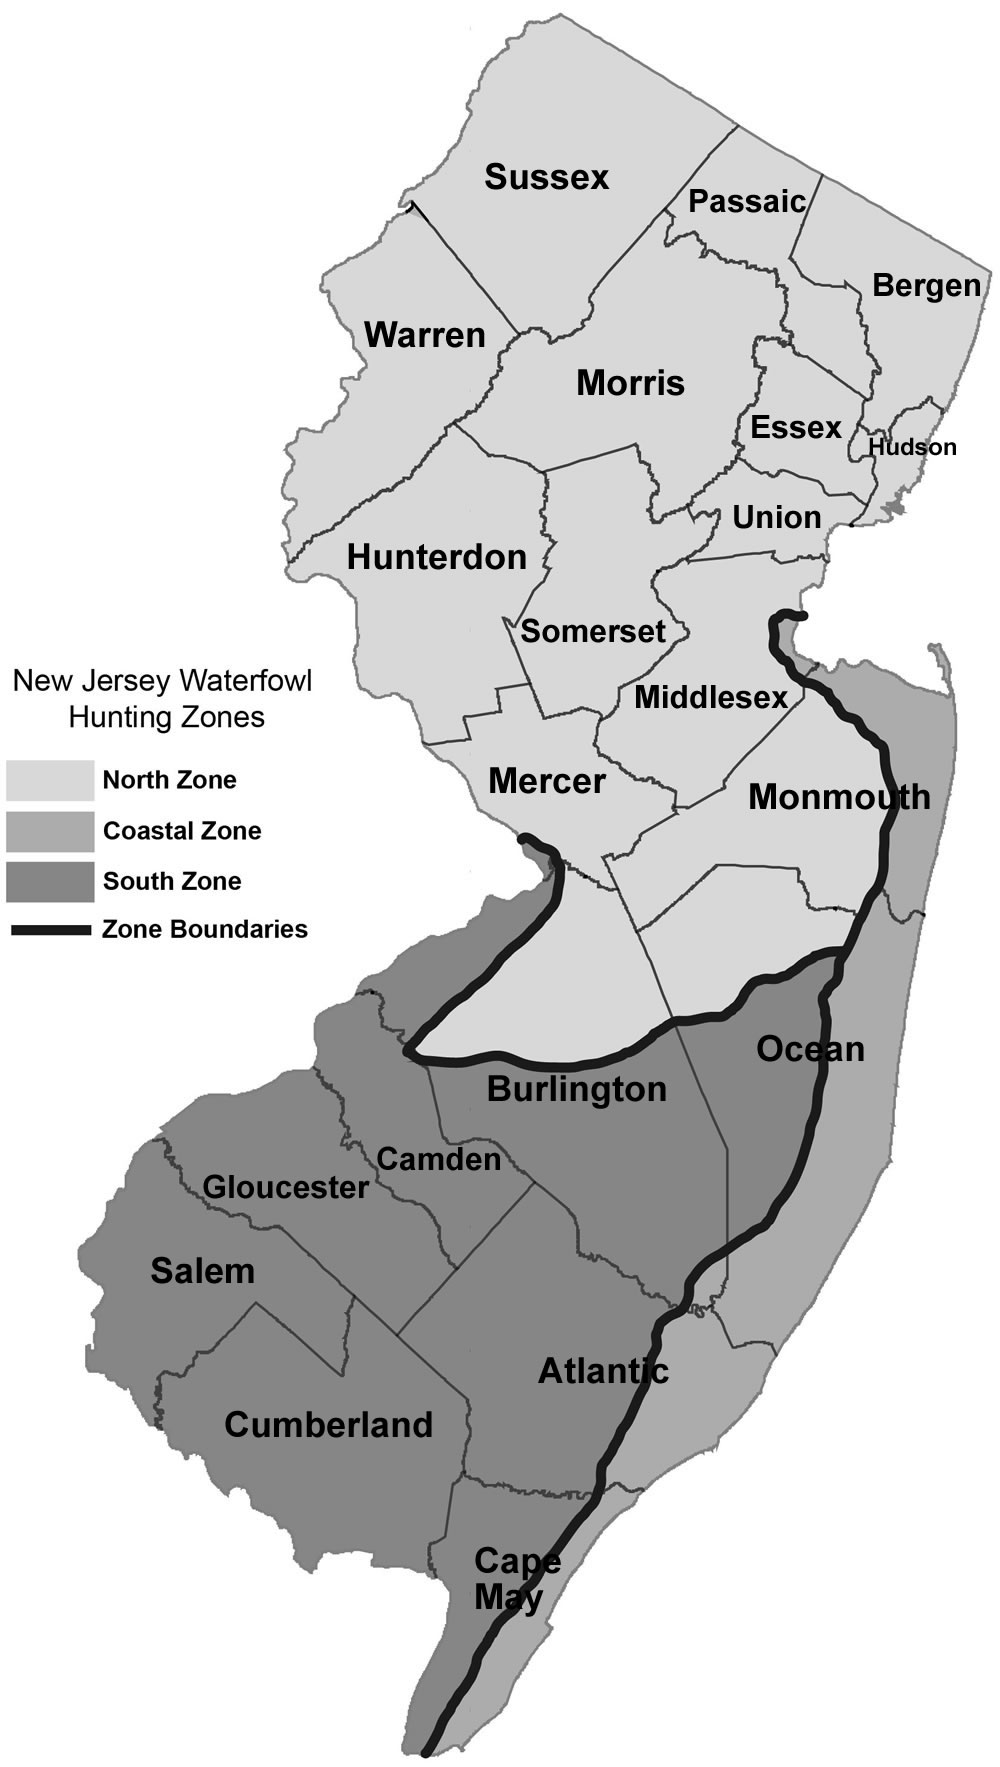 NJDEP Division of Fish & Wildlife - Migratory Bird Hunting Zones and on map of hightstown nj, map of ewing township nj, map of mount vernon nj, map of lawnside nj, map of wood-ridge nj, map of mullica township nj, map of haddon twp nj, map of leonardo nj, map of alexandria nj, map of cliffwood beach nj, map of west long branch nj, map of hudson nj, map of farmington nj, map of lafayette nj, map of cape may courthouse nj, map of stafford twp nj, map of sea island nj, map of pedricktown nj, map of new jersey, map of normandy beach nj,